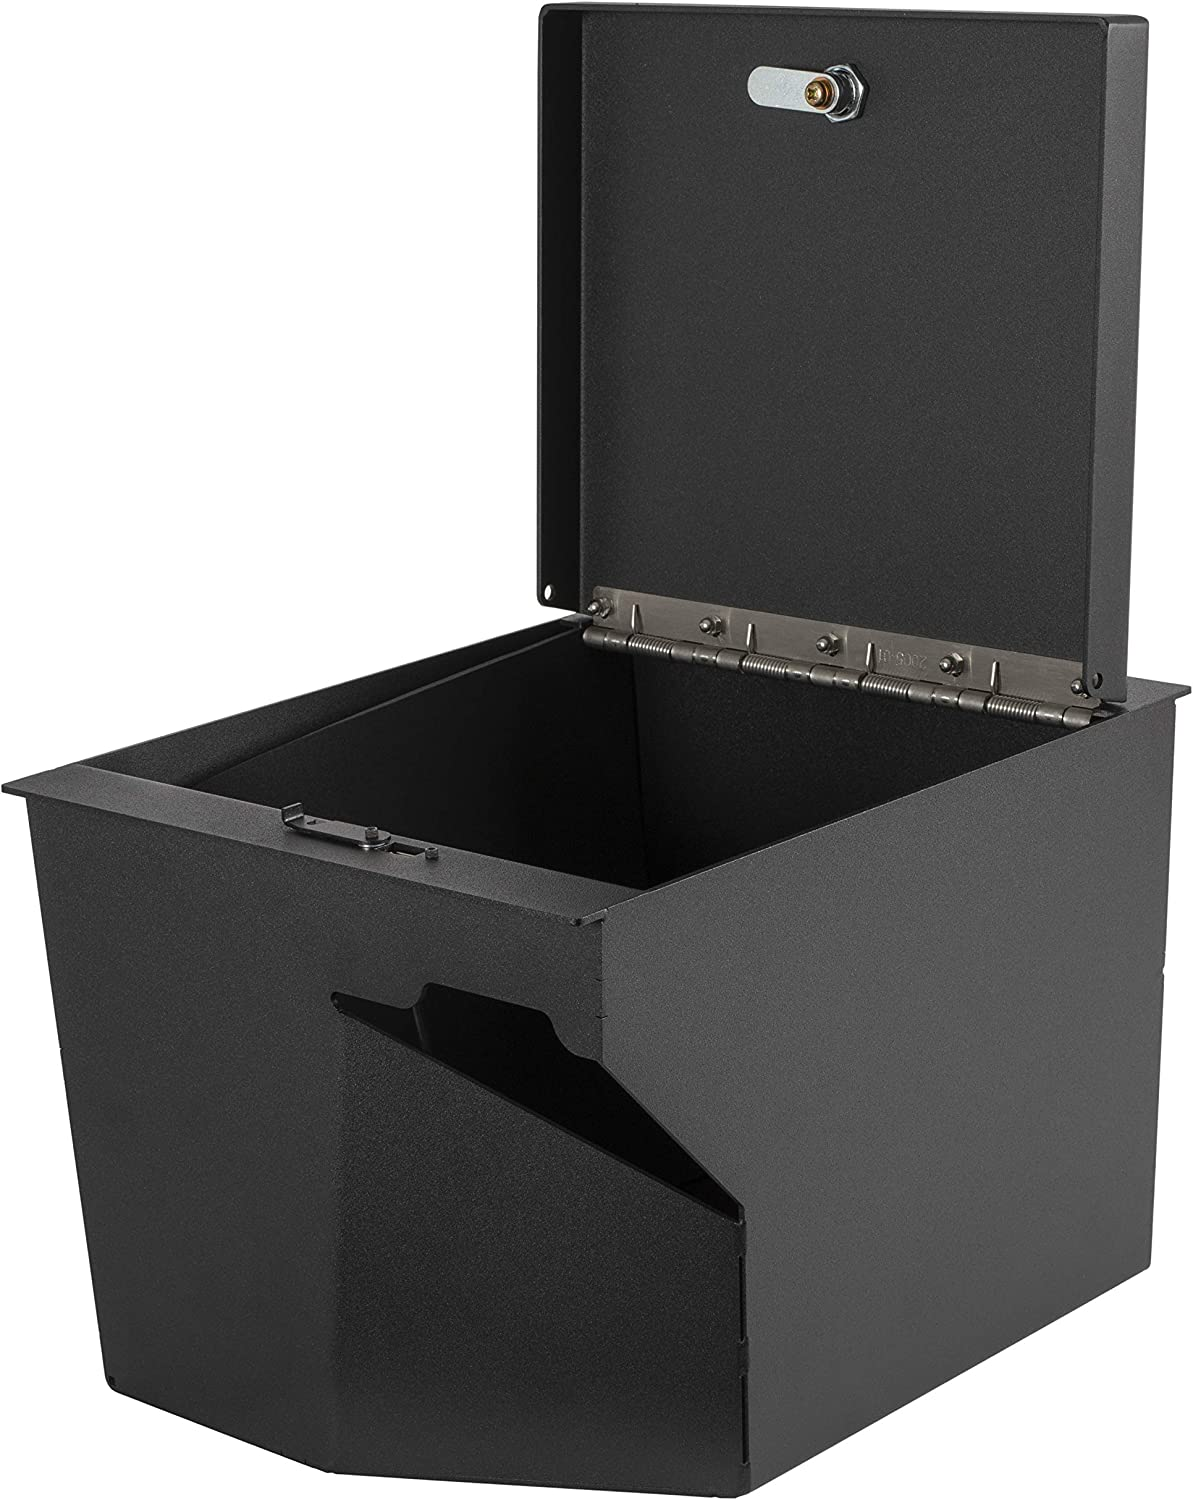 Keep Personal Items Secure and Organized in Car Compatible With 2014-2020 Toyota Tundra Lock/'er Down Console Safe with 4 Digit Combo